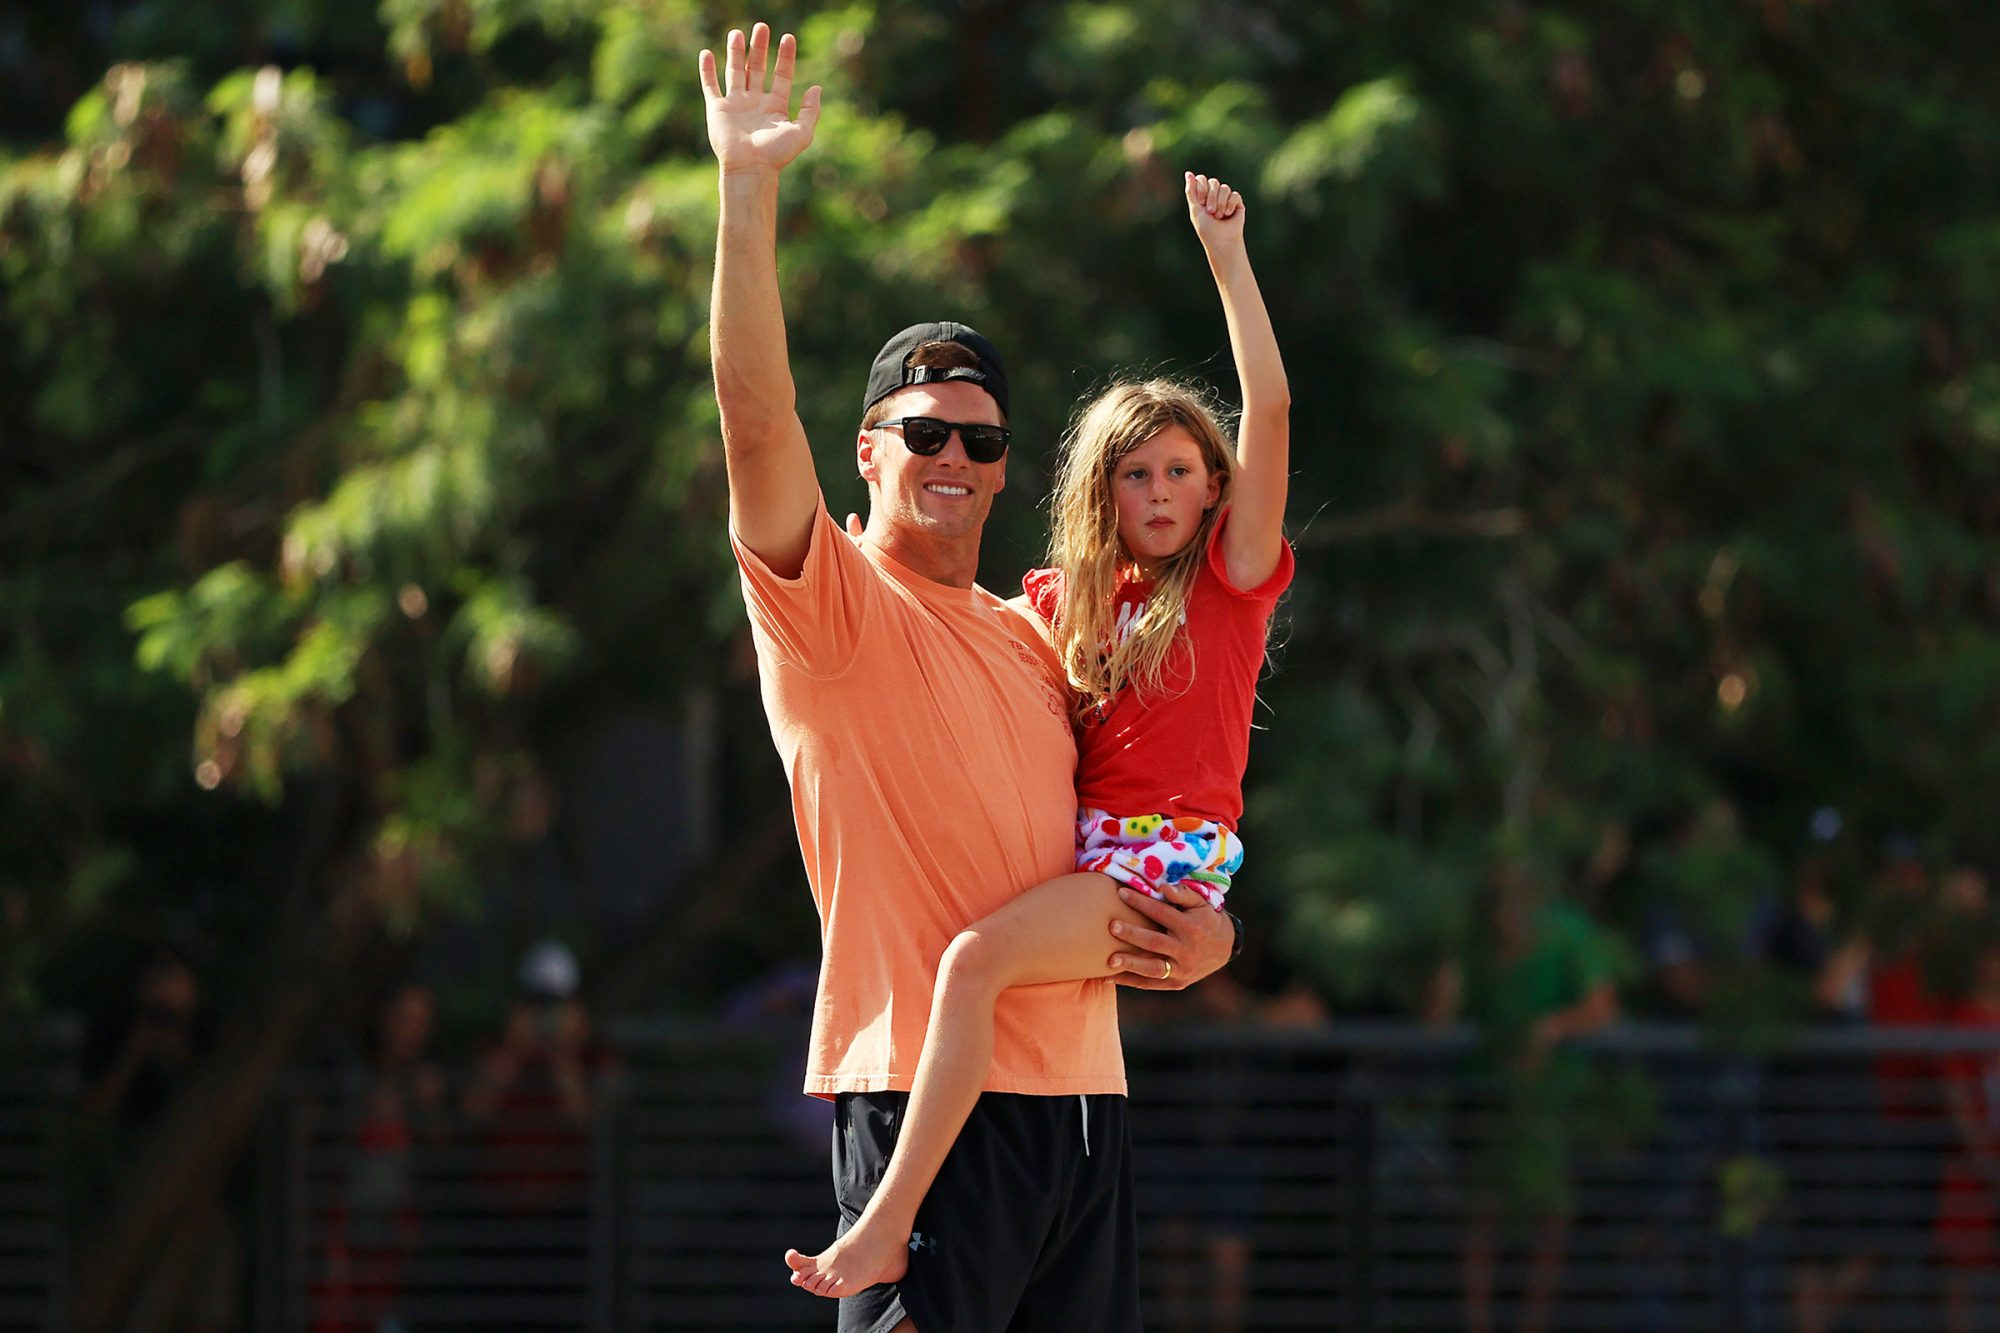 Tom Brady #12 of the Tampa Bay Buccaneers celebrates with his daughter Vivian during the Tampa Bay Buccaneers Super Bowl boat parade on February 10, 2021 after defeating the Kansas City Chiefs 31-9 in Super Bowl LV in Tampa, Florida